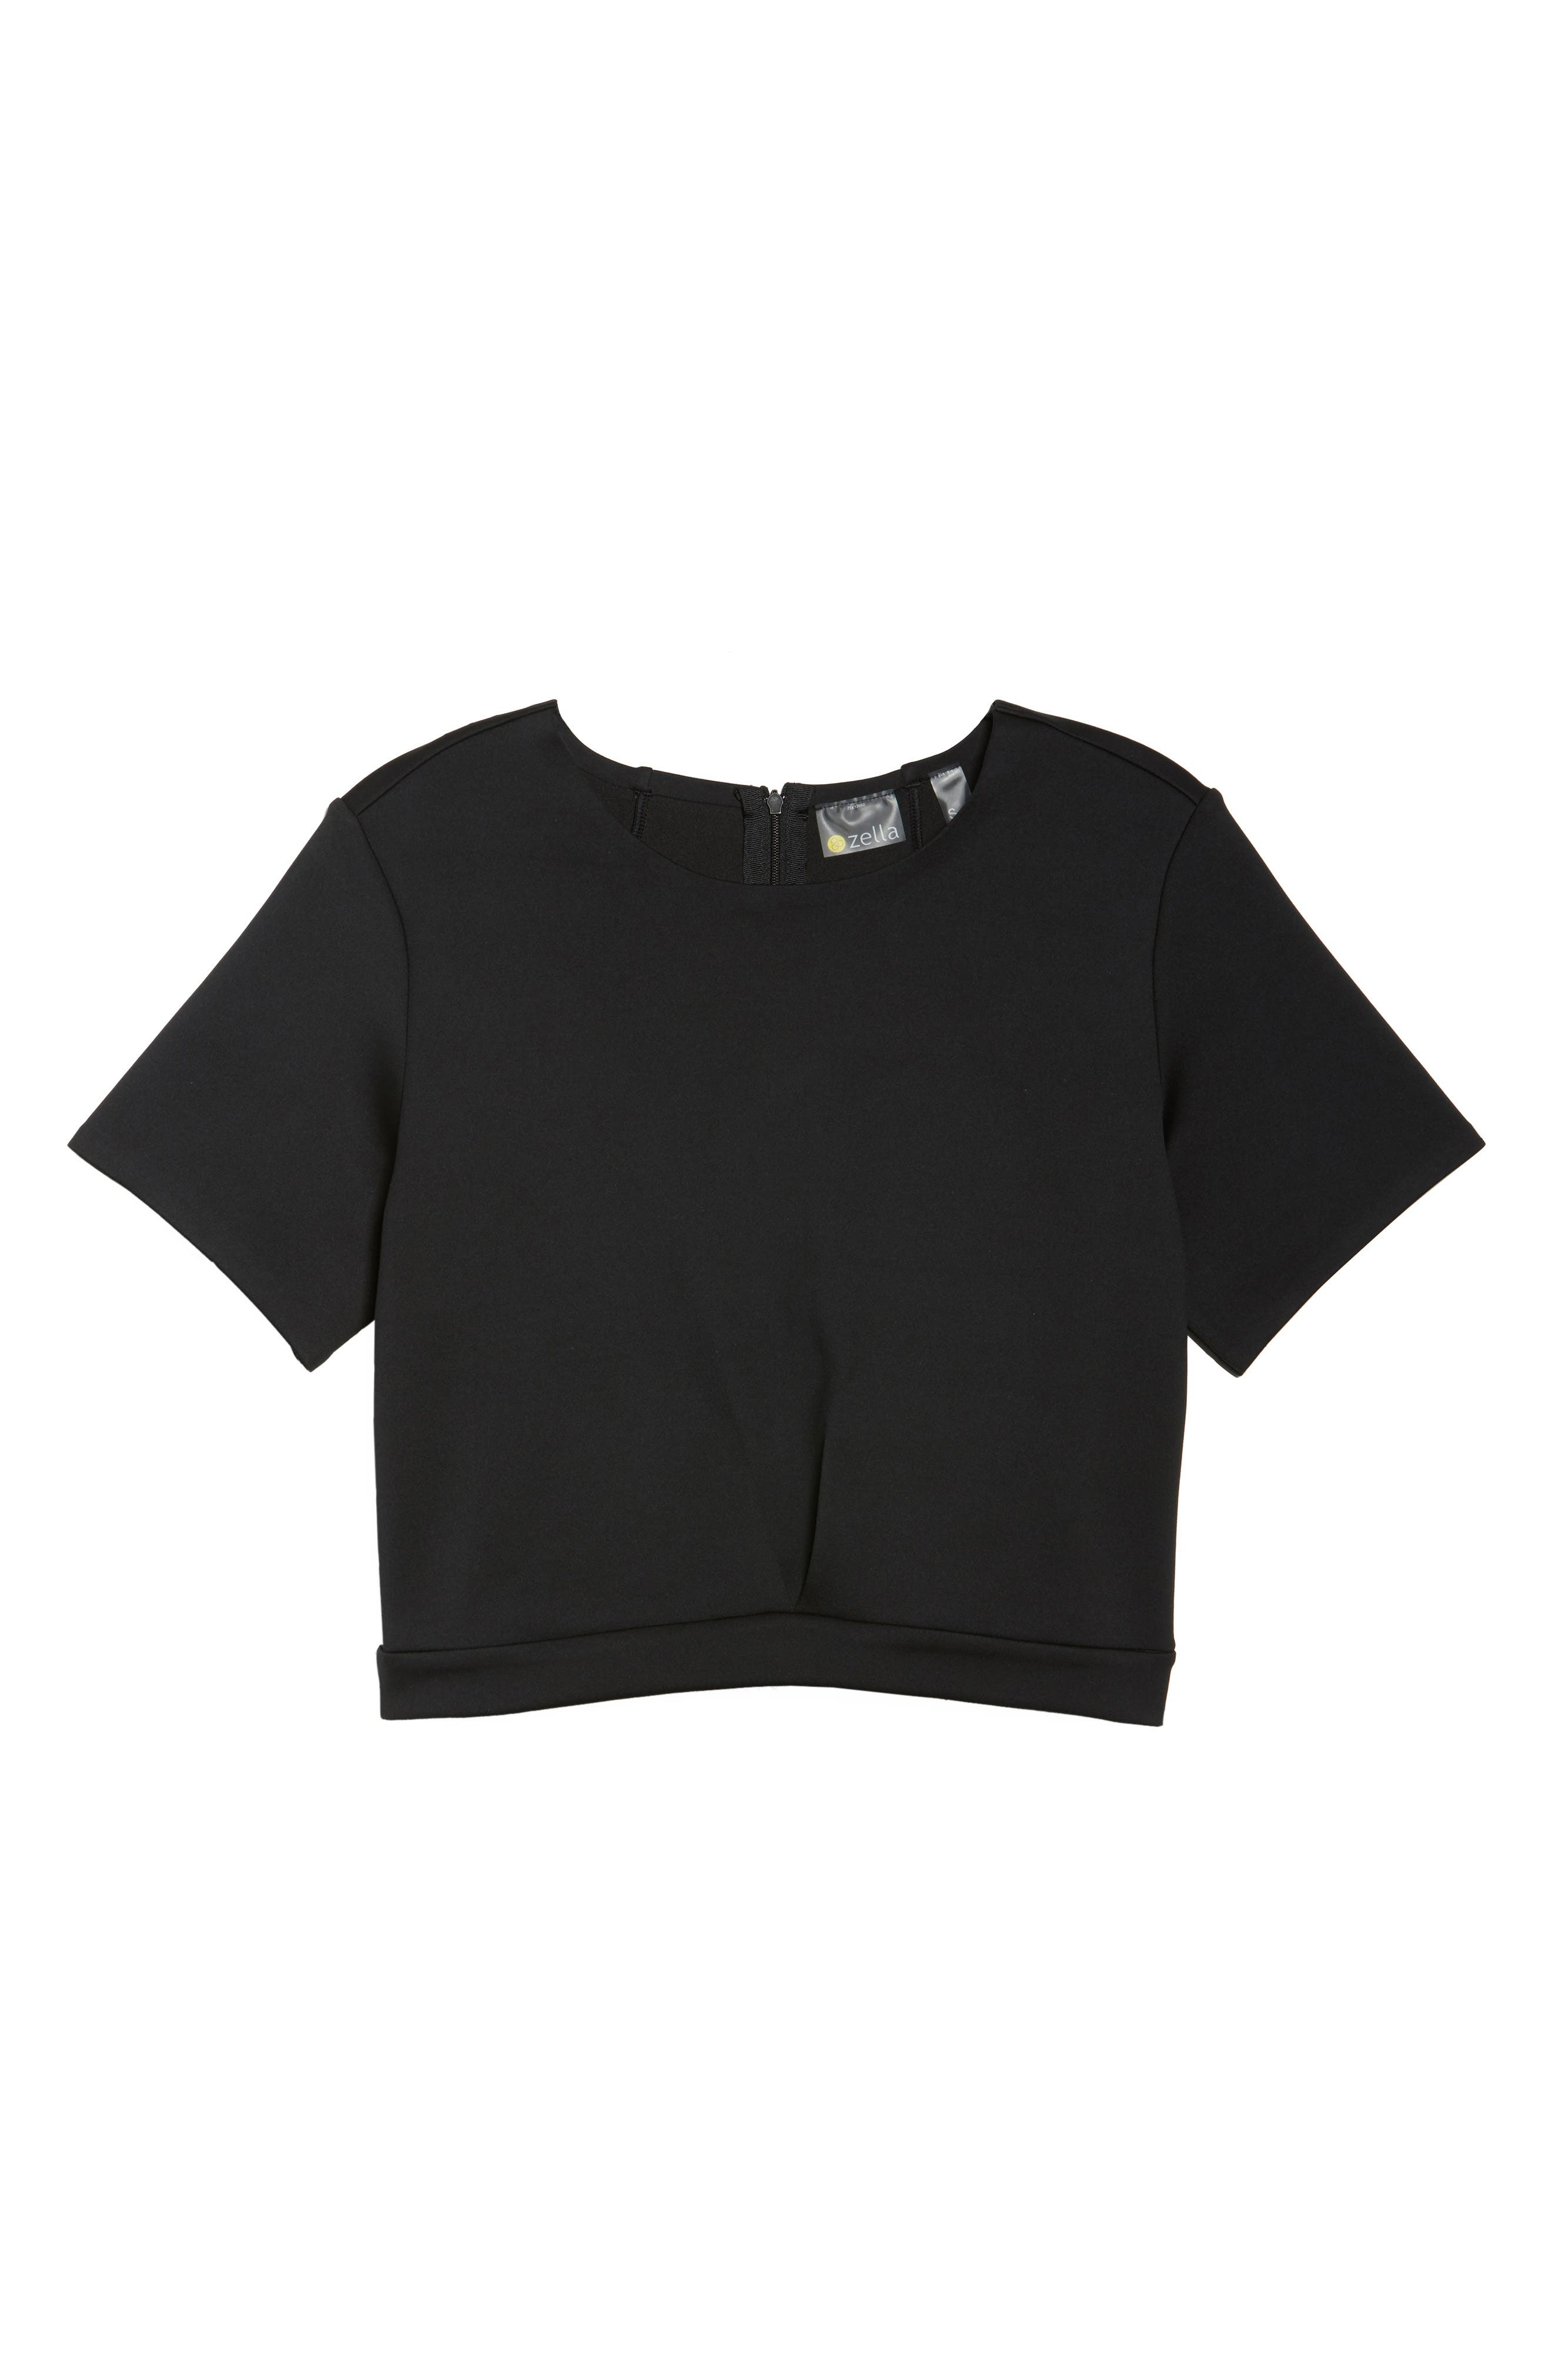 Any Day Crop Top,                             Alternate thumbnail 7, color,                             Black